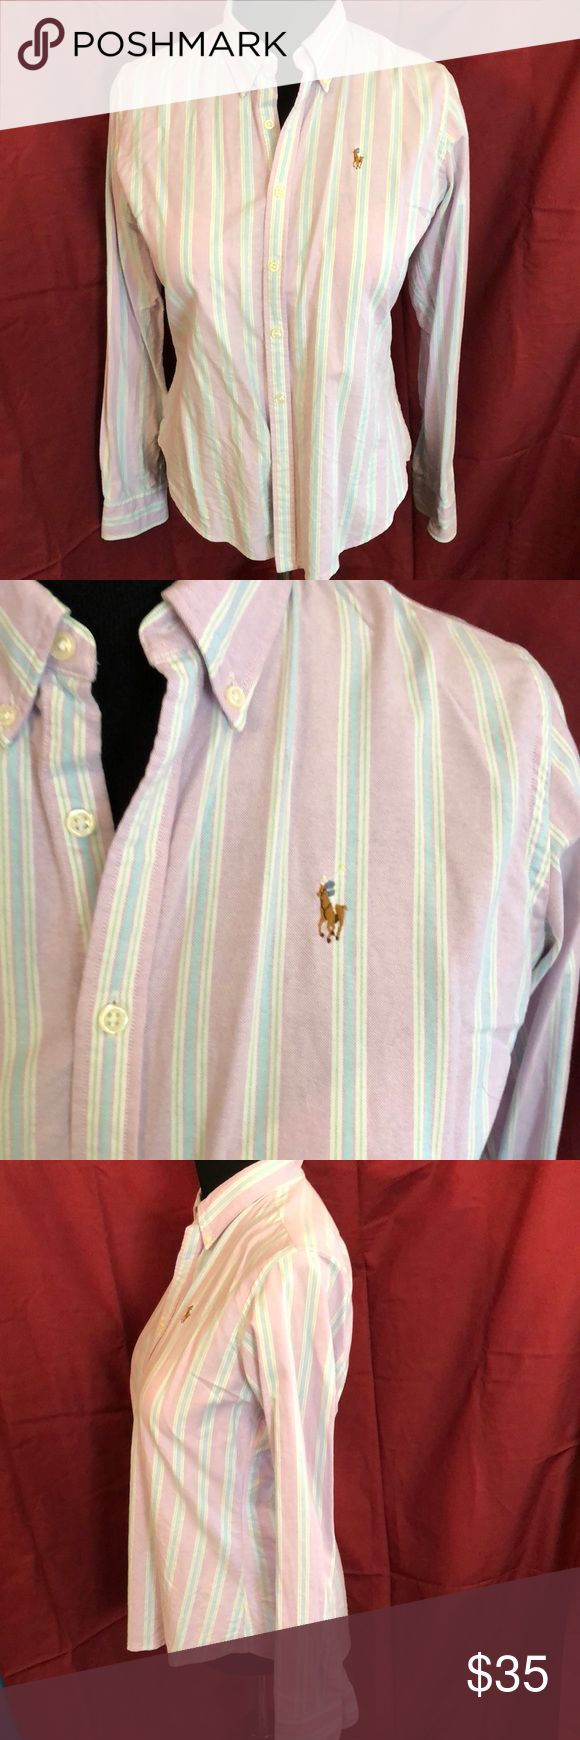 Ralph Lauren Polo striped slim fit button down Vintage Ralph Lauren Polo striped button down in lavender, light blue, green and white. Slim fit. Fits true to size but tailored vs boxy. Gives you a very flattering shape. Ralph Lauren Tops Button Down Shirts